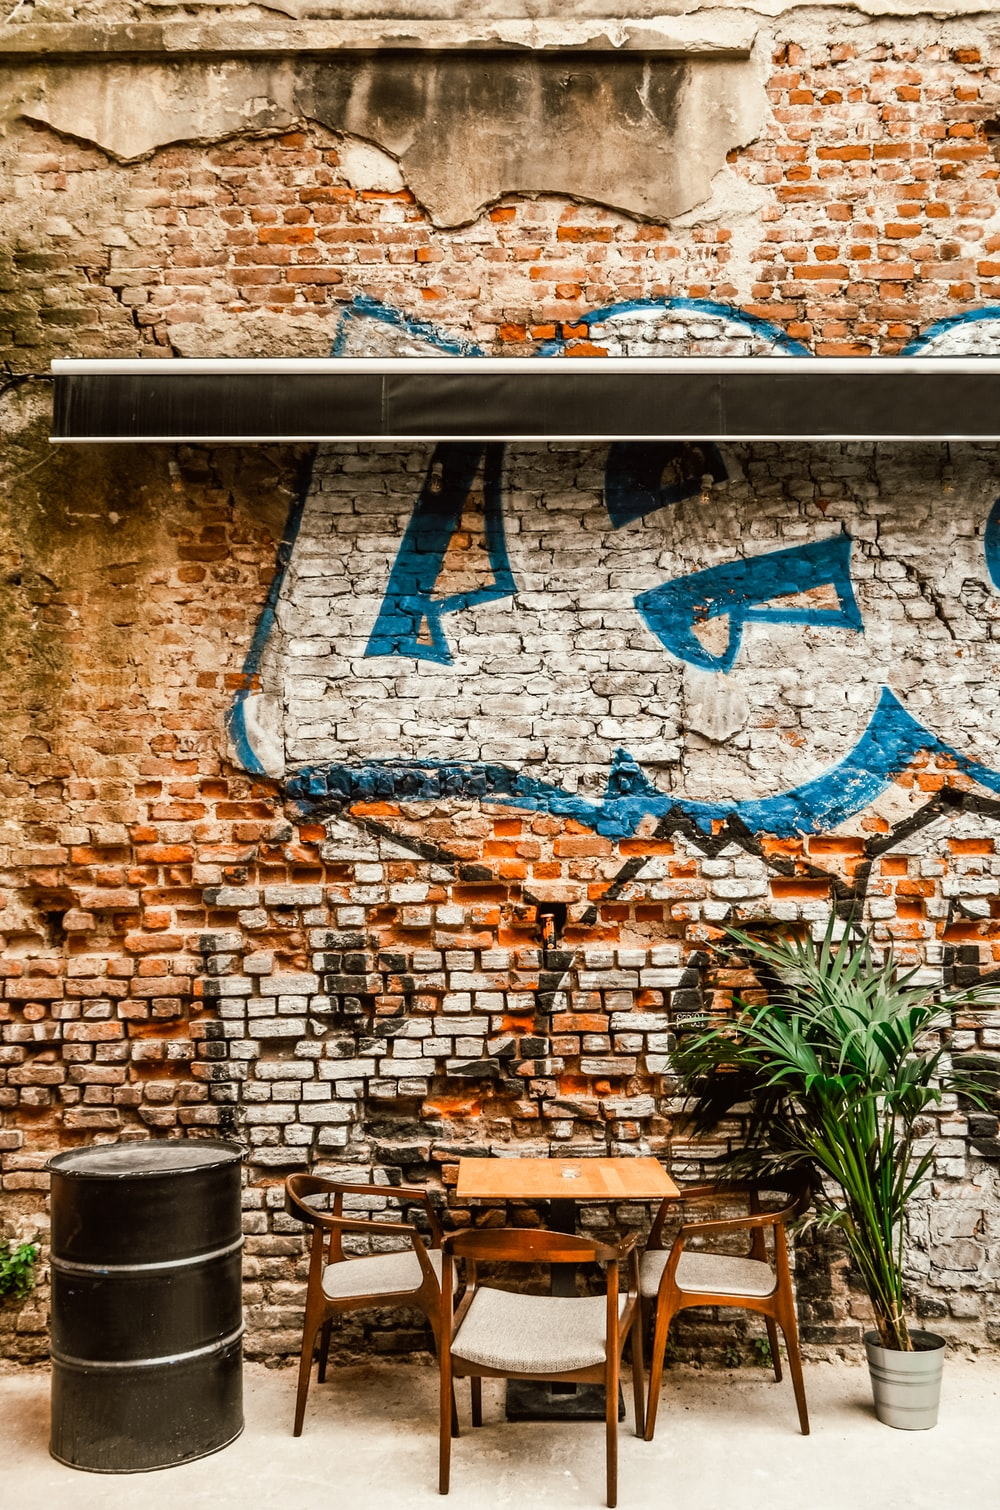 brown brick wall with blue and white graffiti